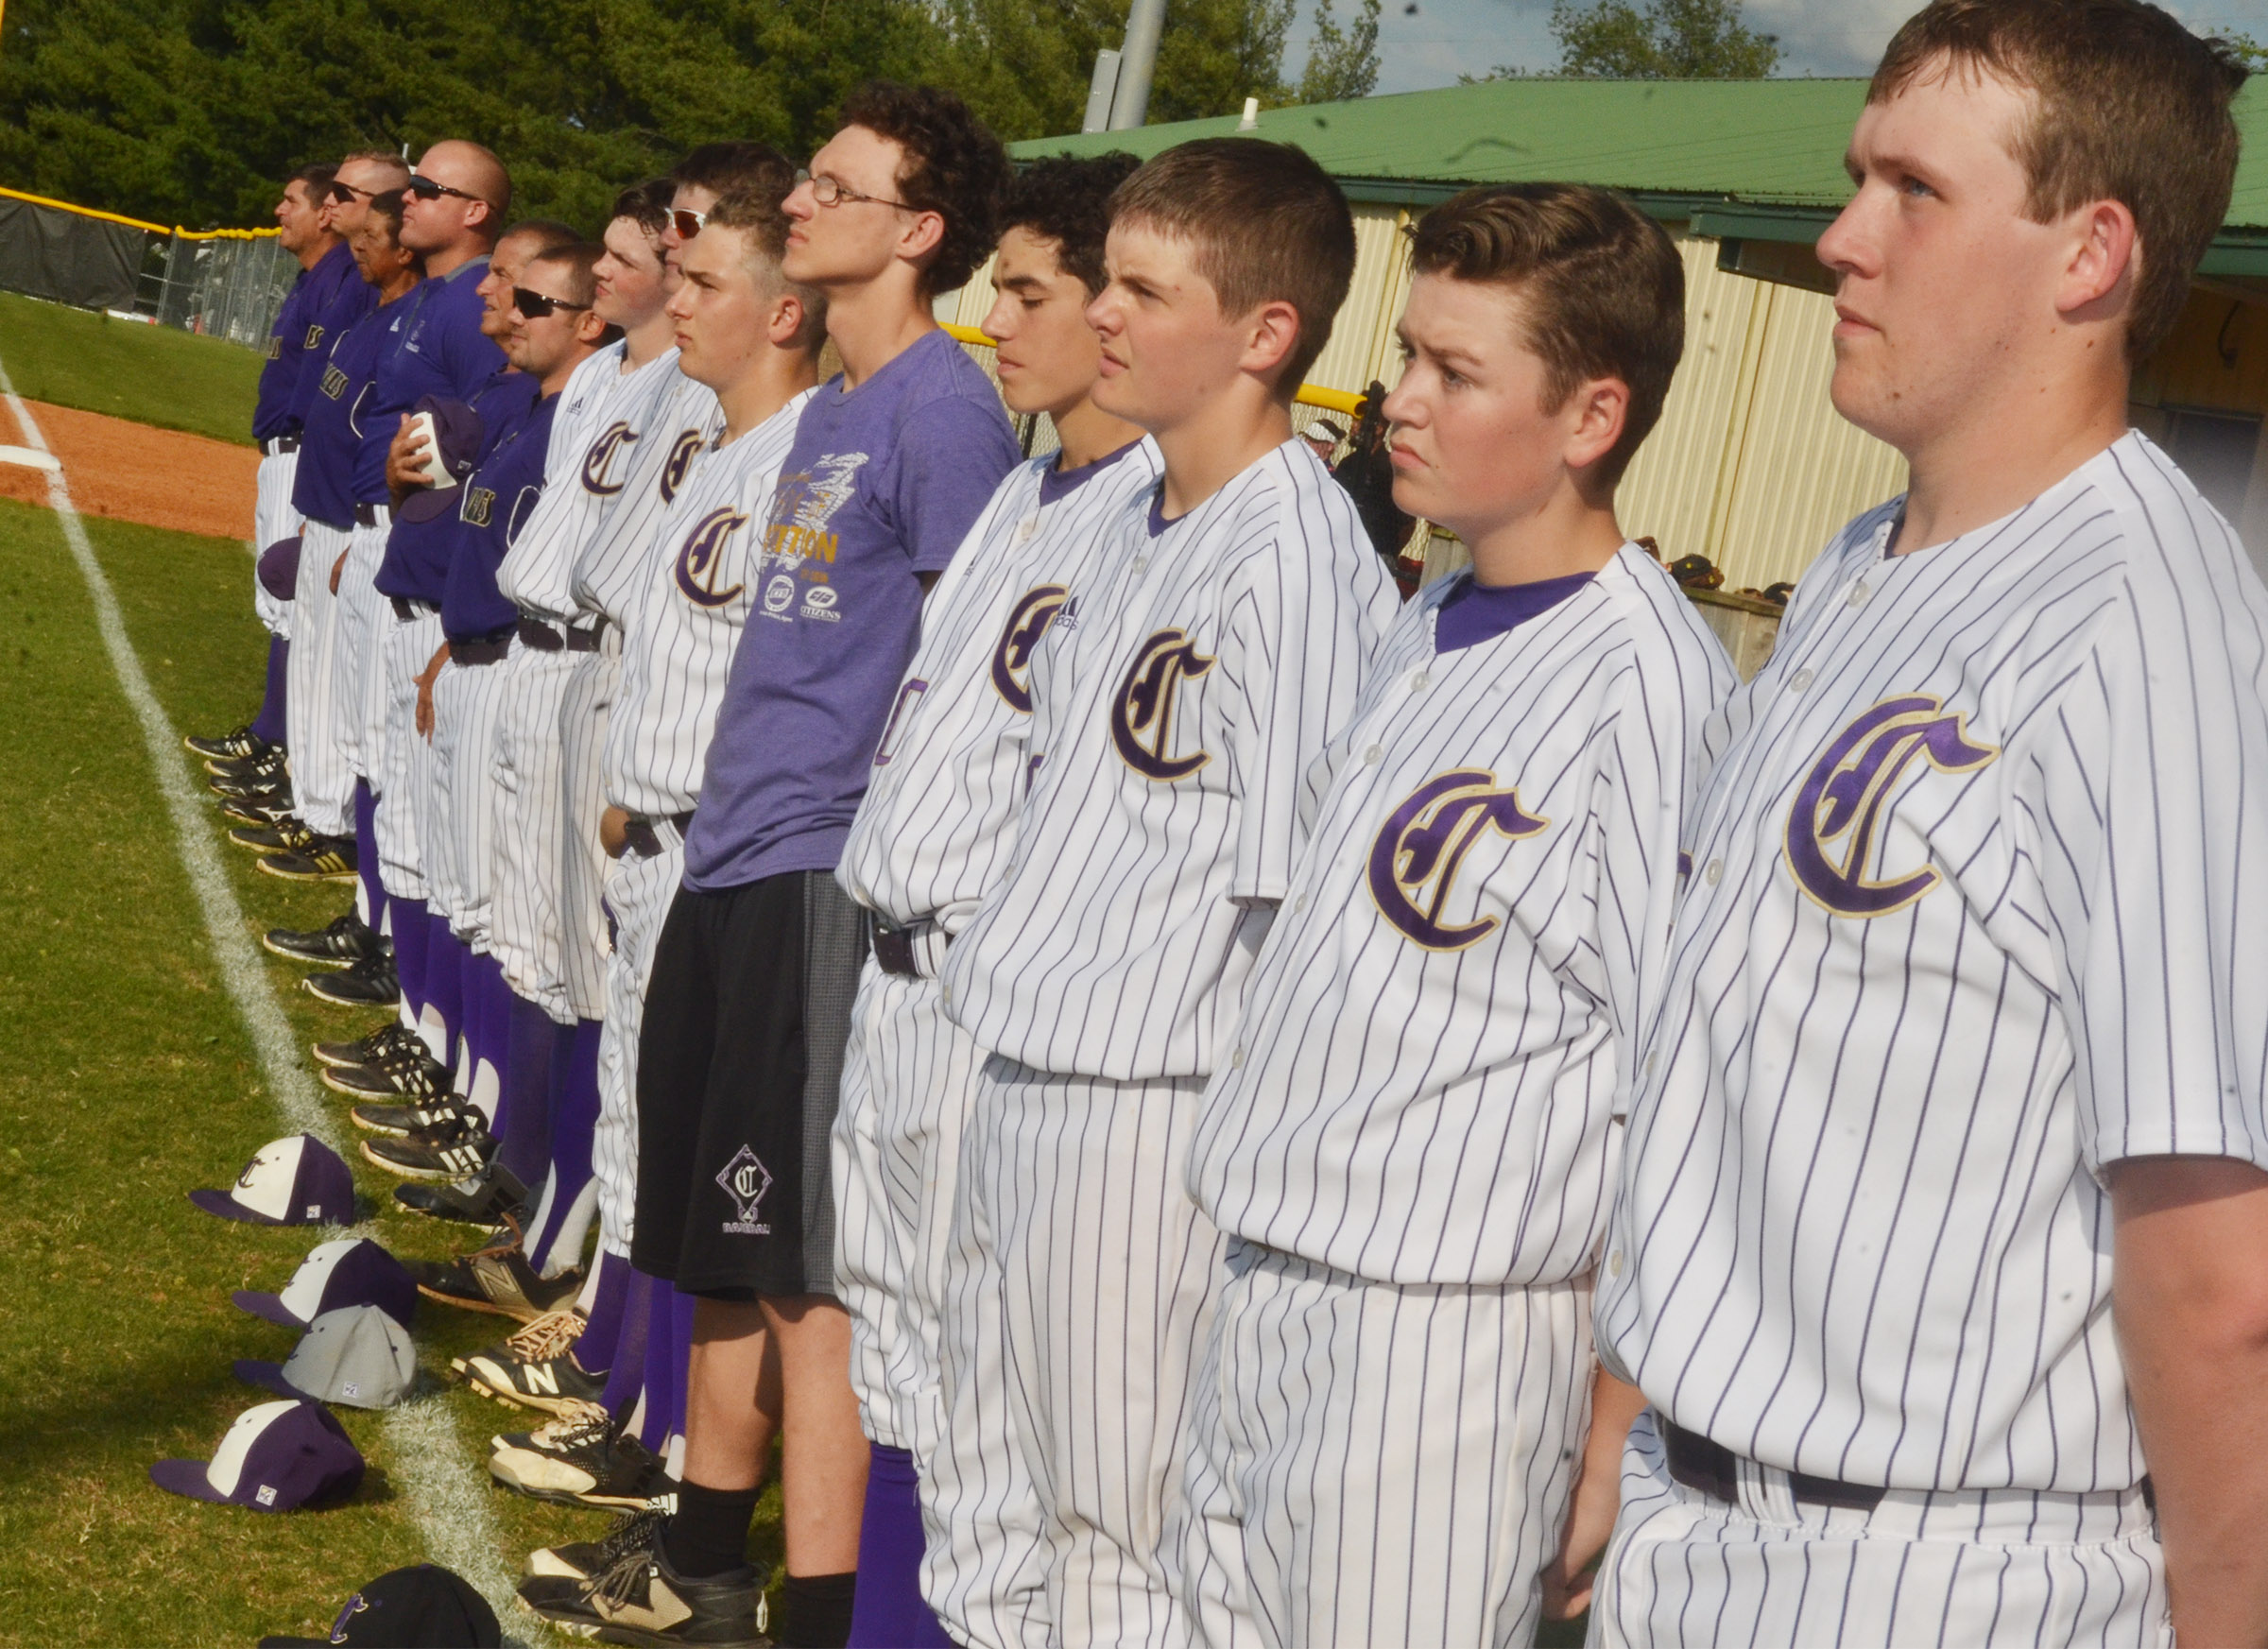 CHS baseball players and coaches stand for the National Anthem.